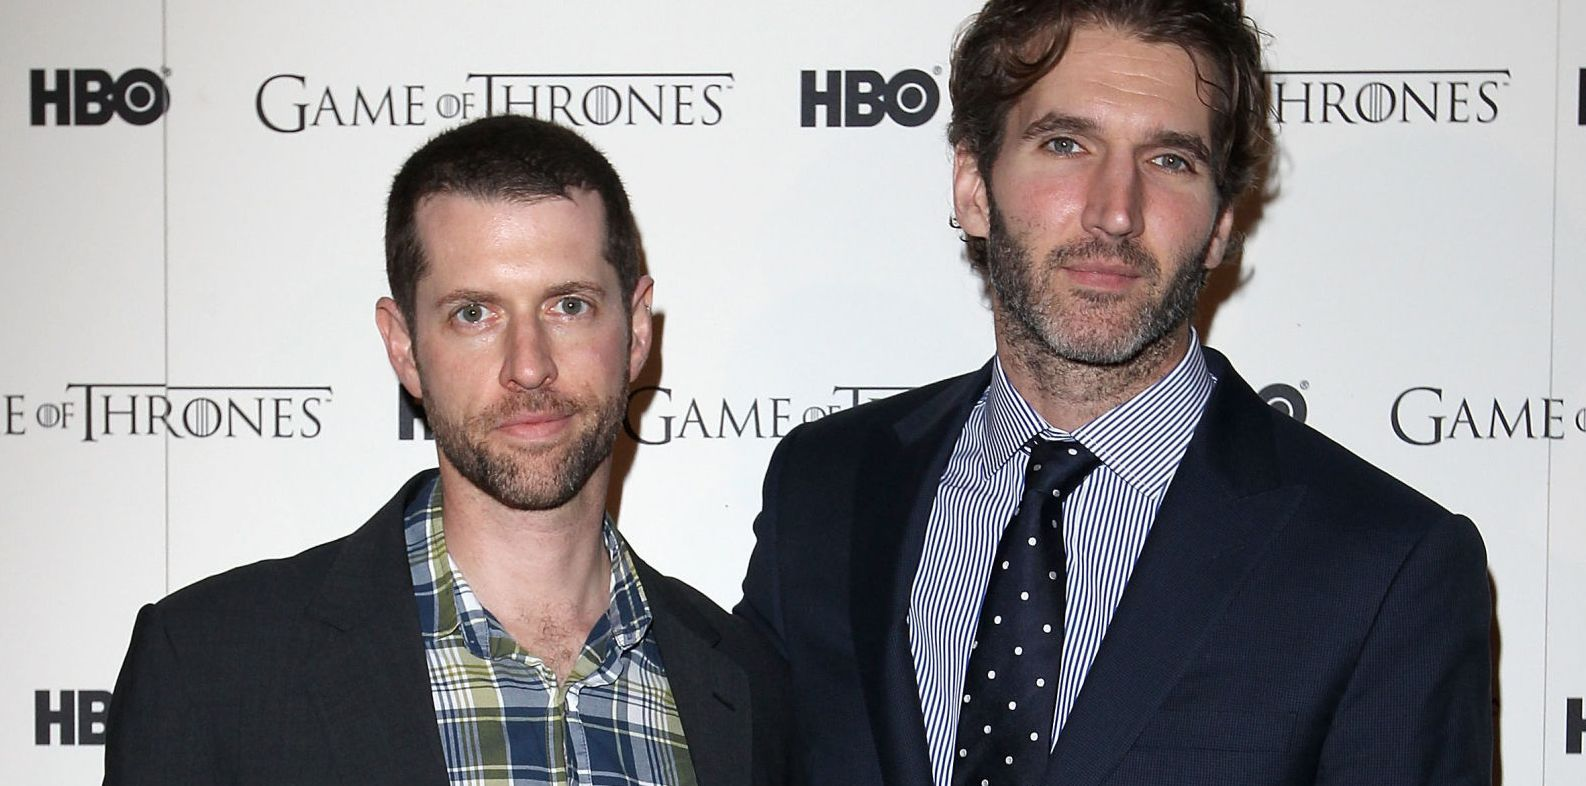 D.B. Weiss (pictured left) and David Benioff (pictured right